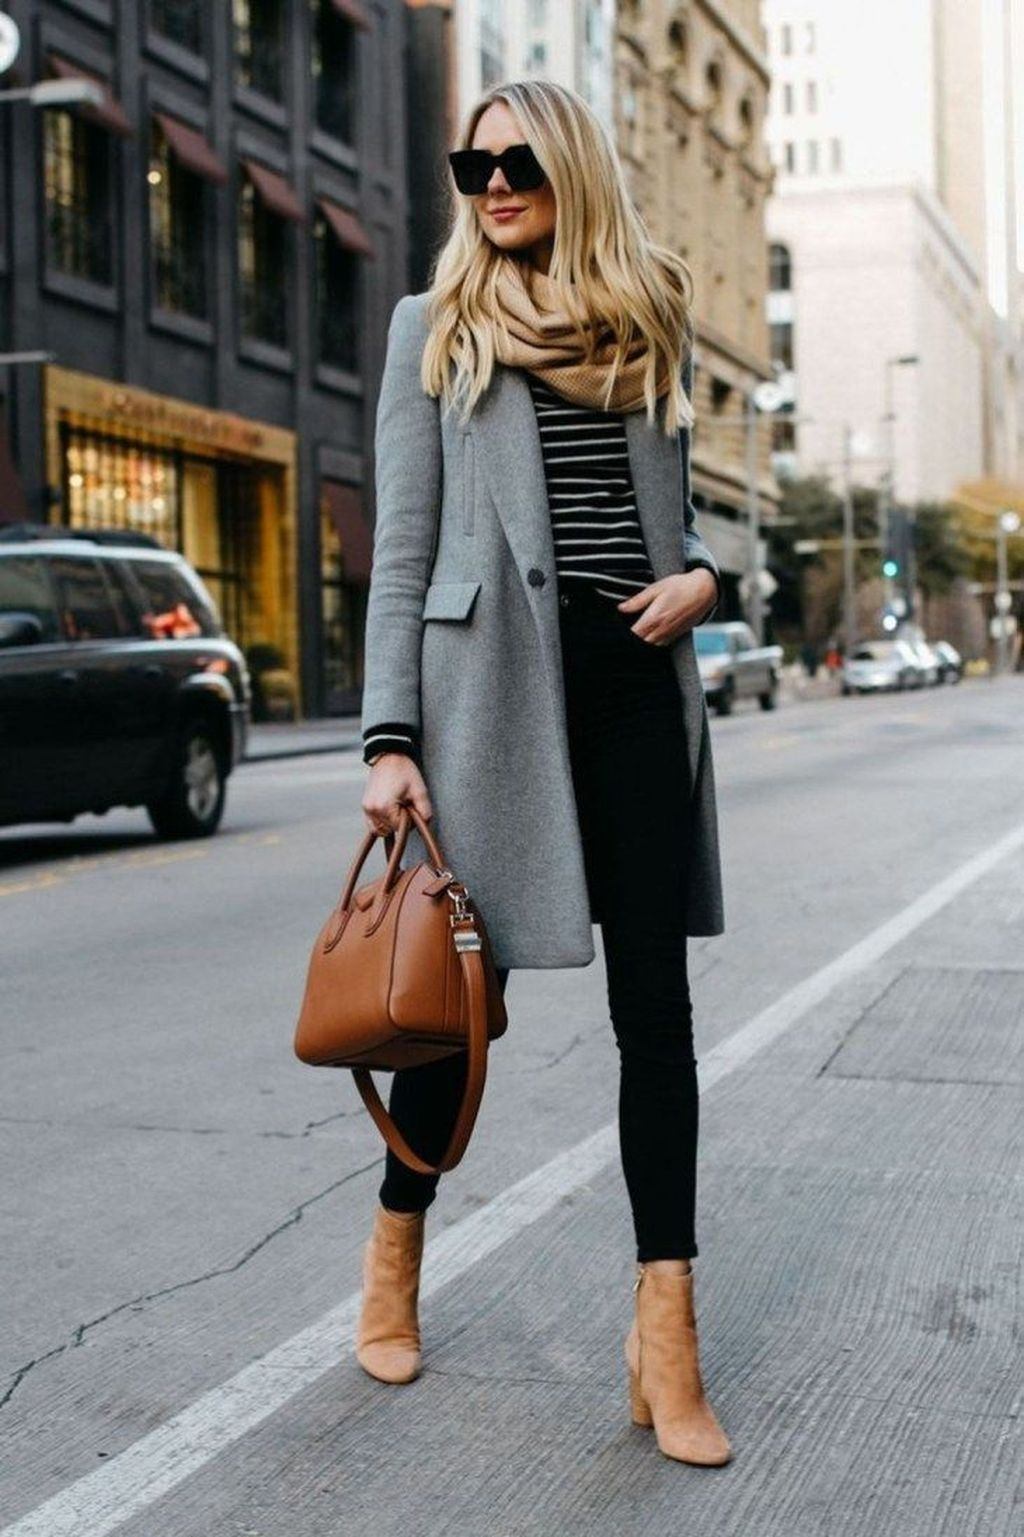 45 Amazing Winter Outfits Ideas #winteroutfits